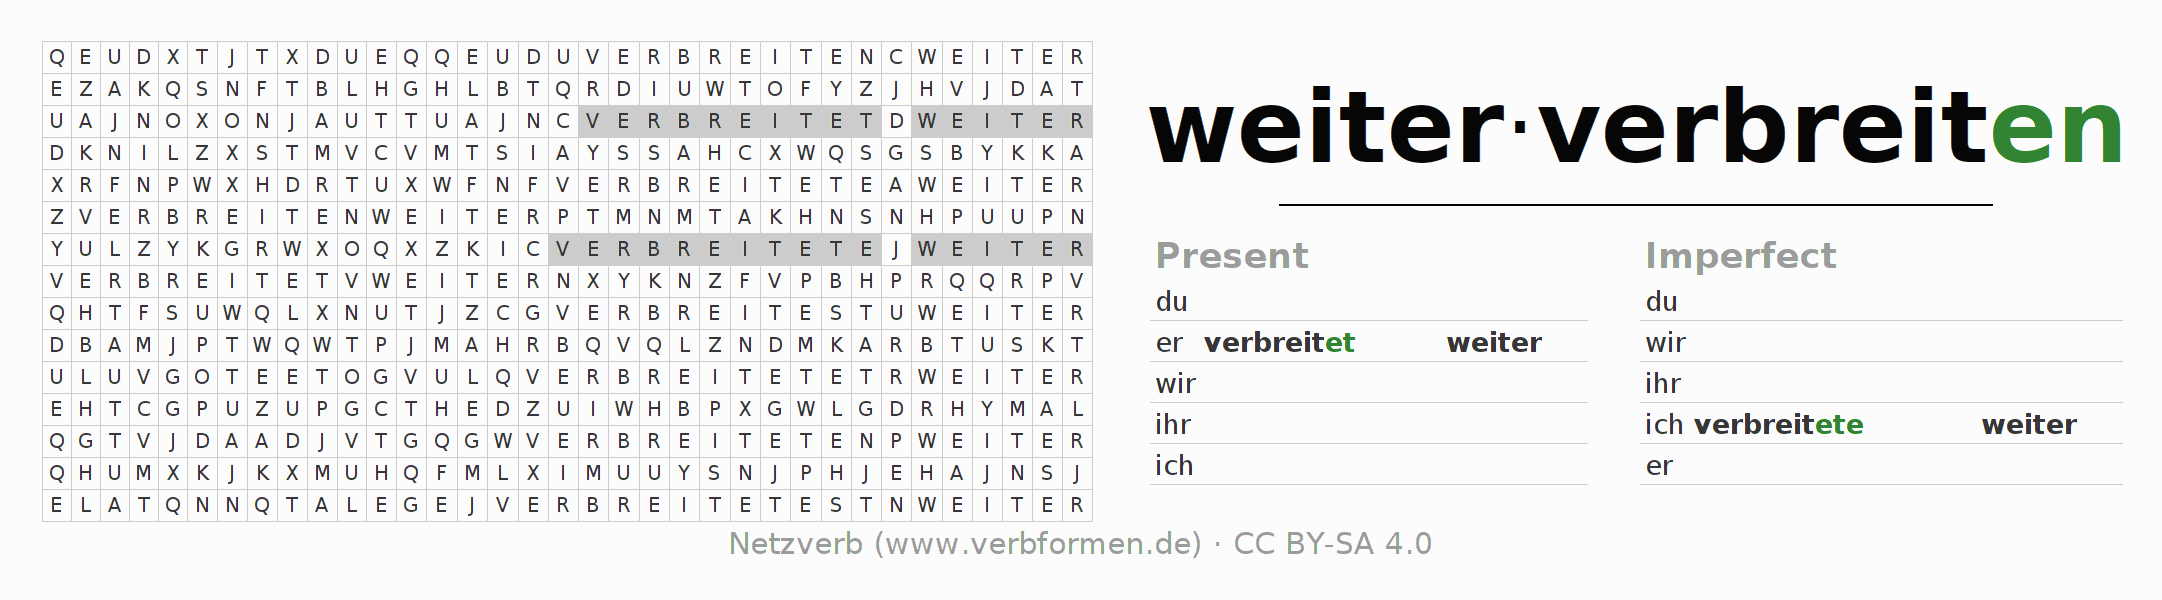 Word search puzzle for the conjugation of the verb weiterverbreiten